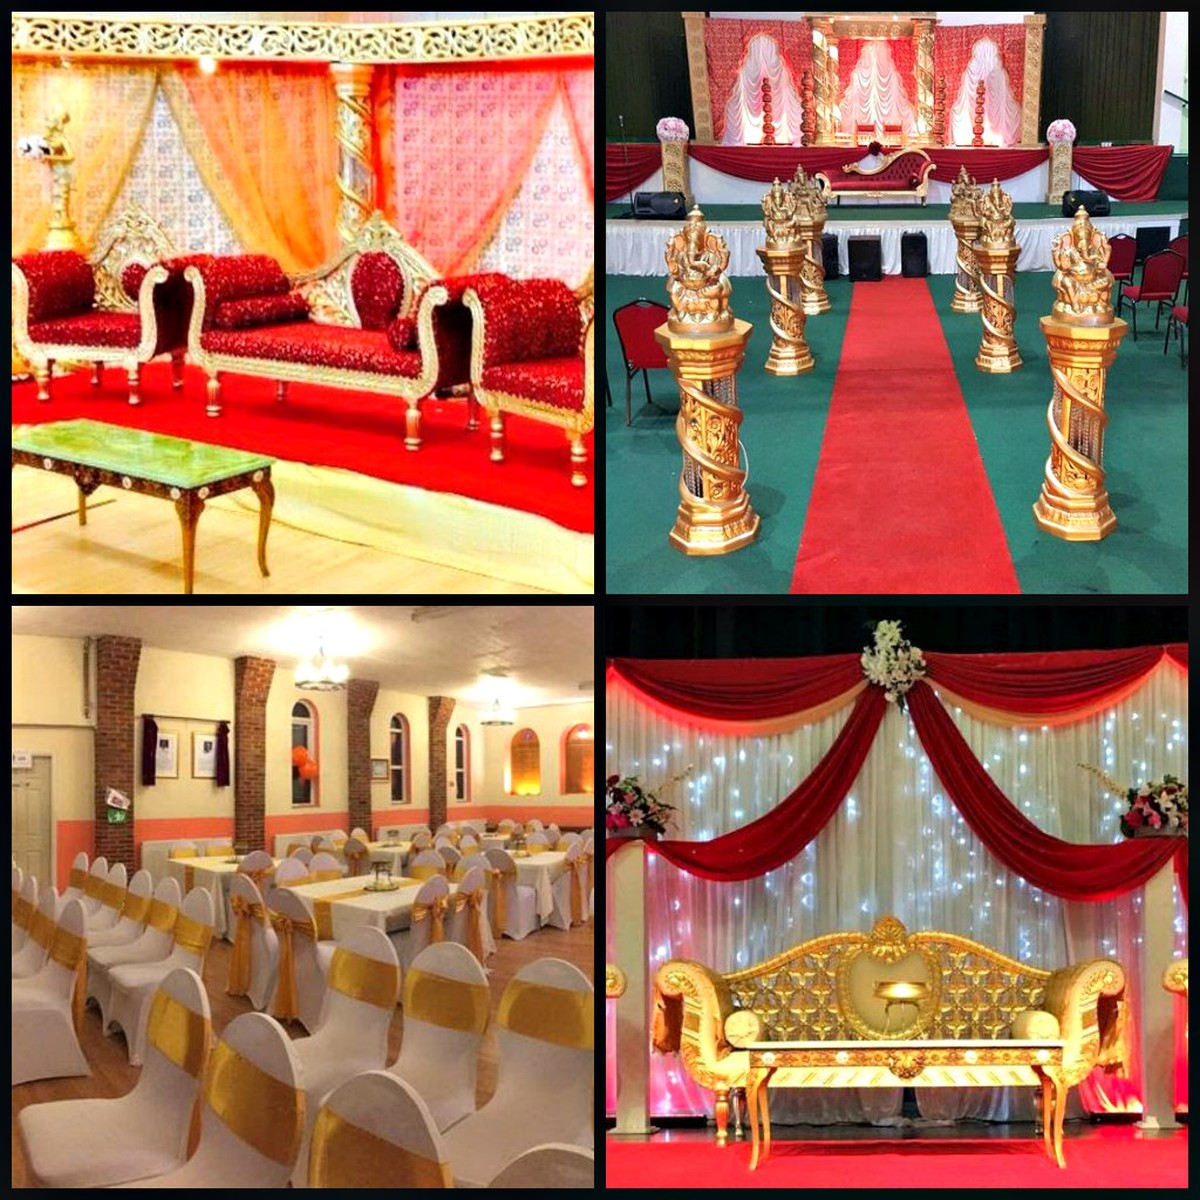 Wedding Decorations London Choice Image Wedding Decoration Ideas Profitable  Business For Sale Chair Cover And Venue